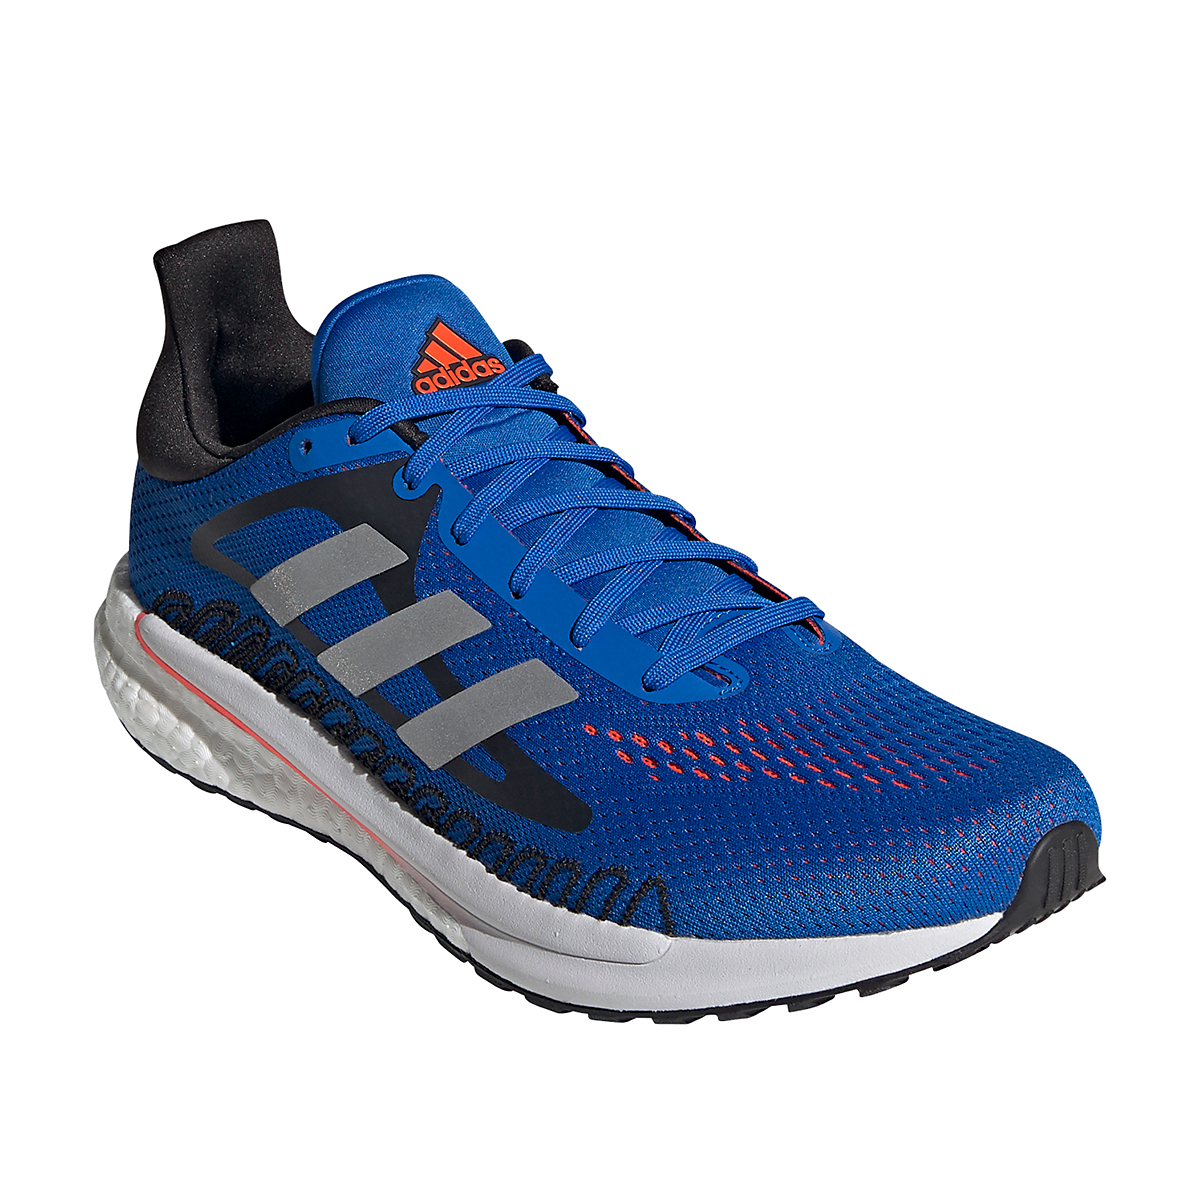 Men's Adidas Solarglide 3 Running Shoe - Color: Football Blue/Silver Metallic/Solar Red - Size: 6.5 - Width: Regular, Football Blue/Silver Metallic/Solar Red, large, image 2